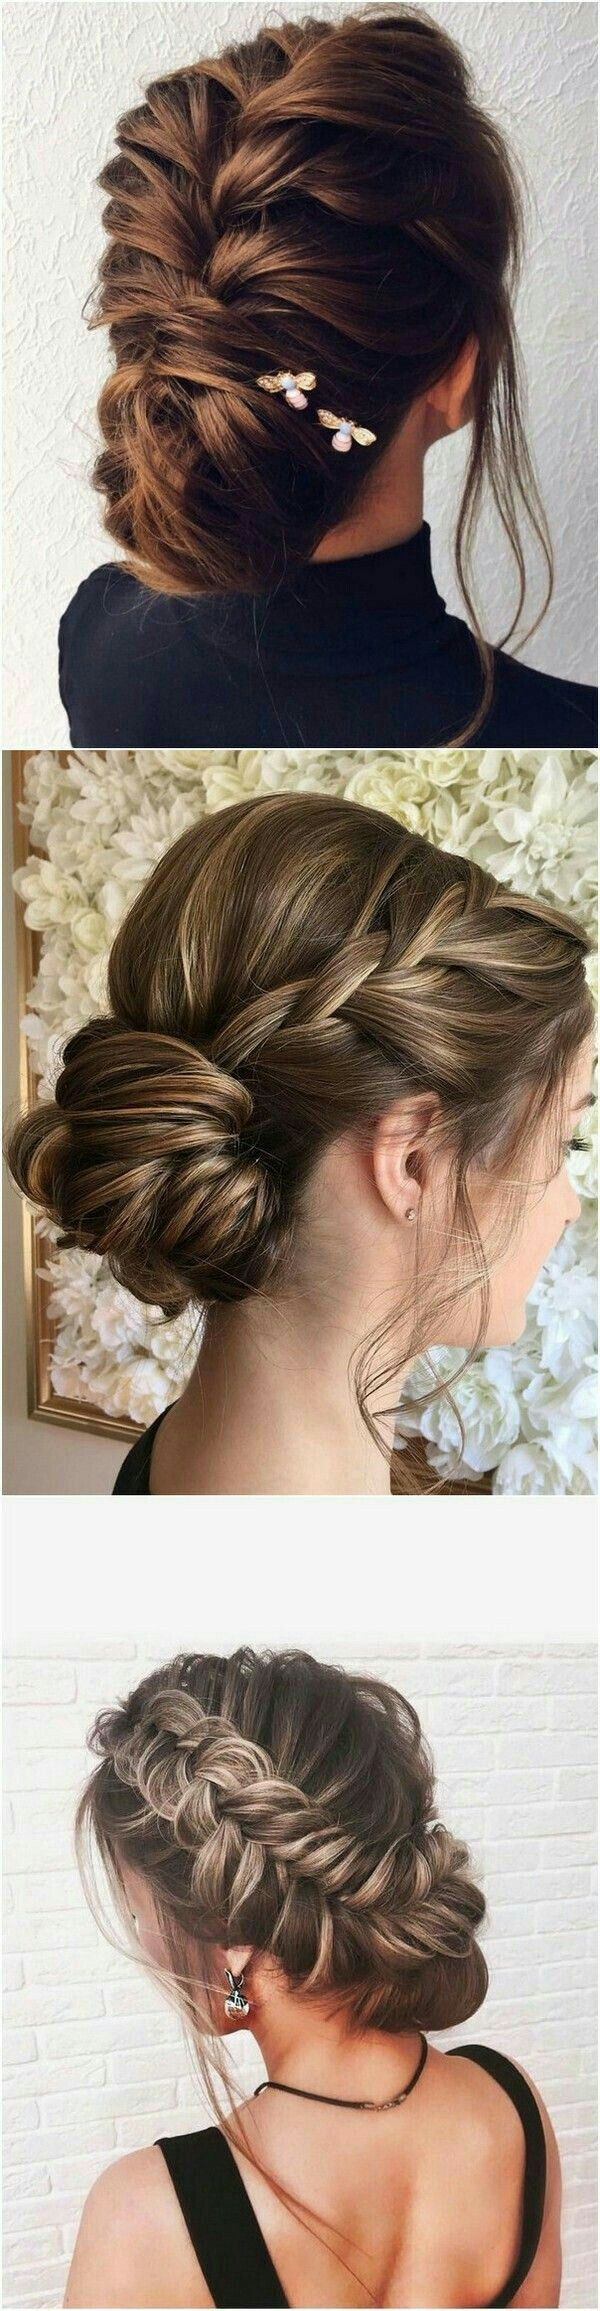 Pin by Albina on Eda Pinterest Hair style Weddings and Wedding